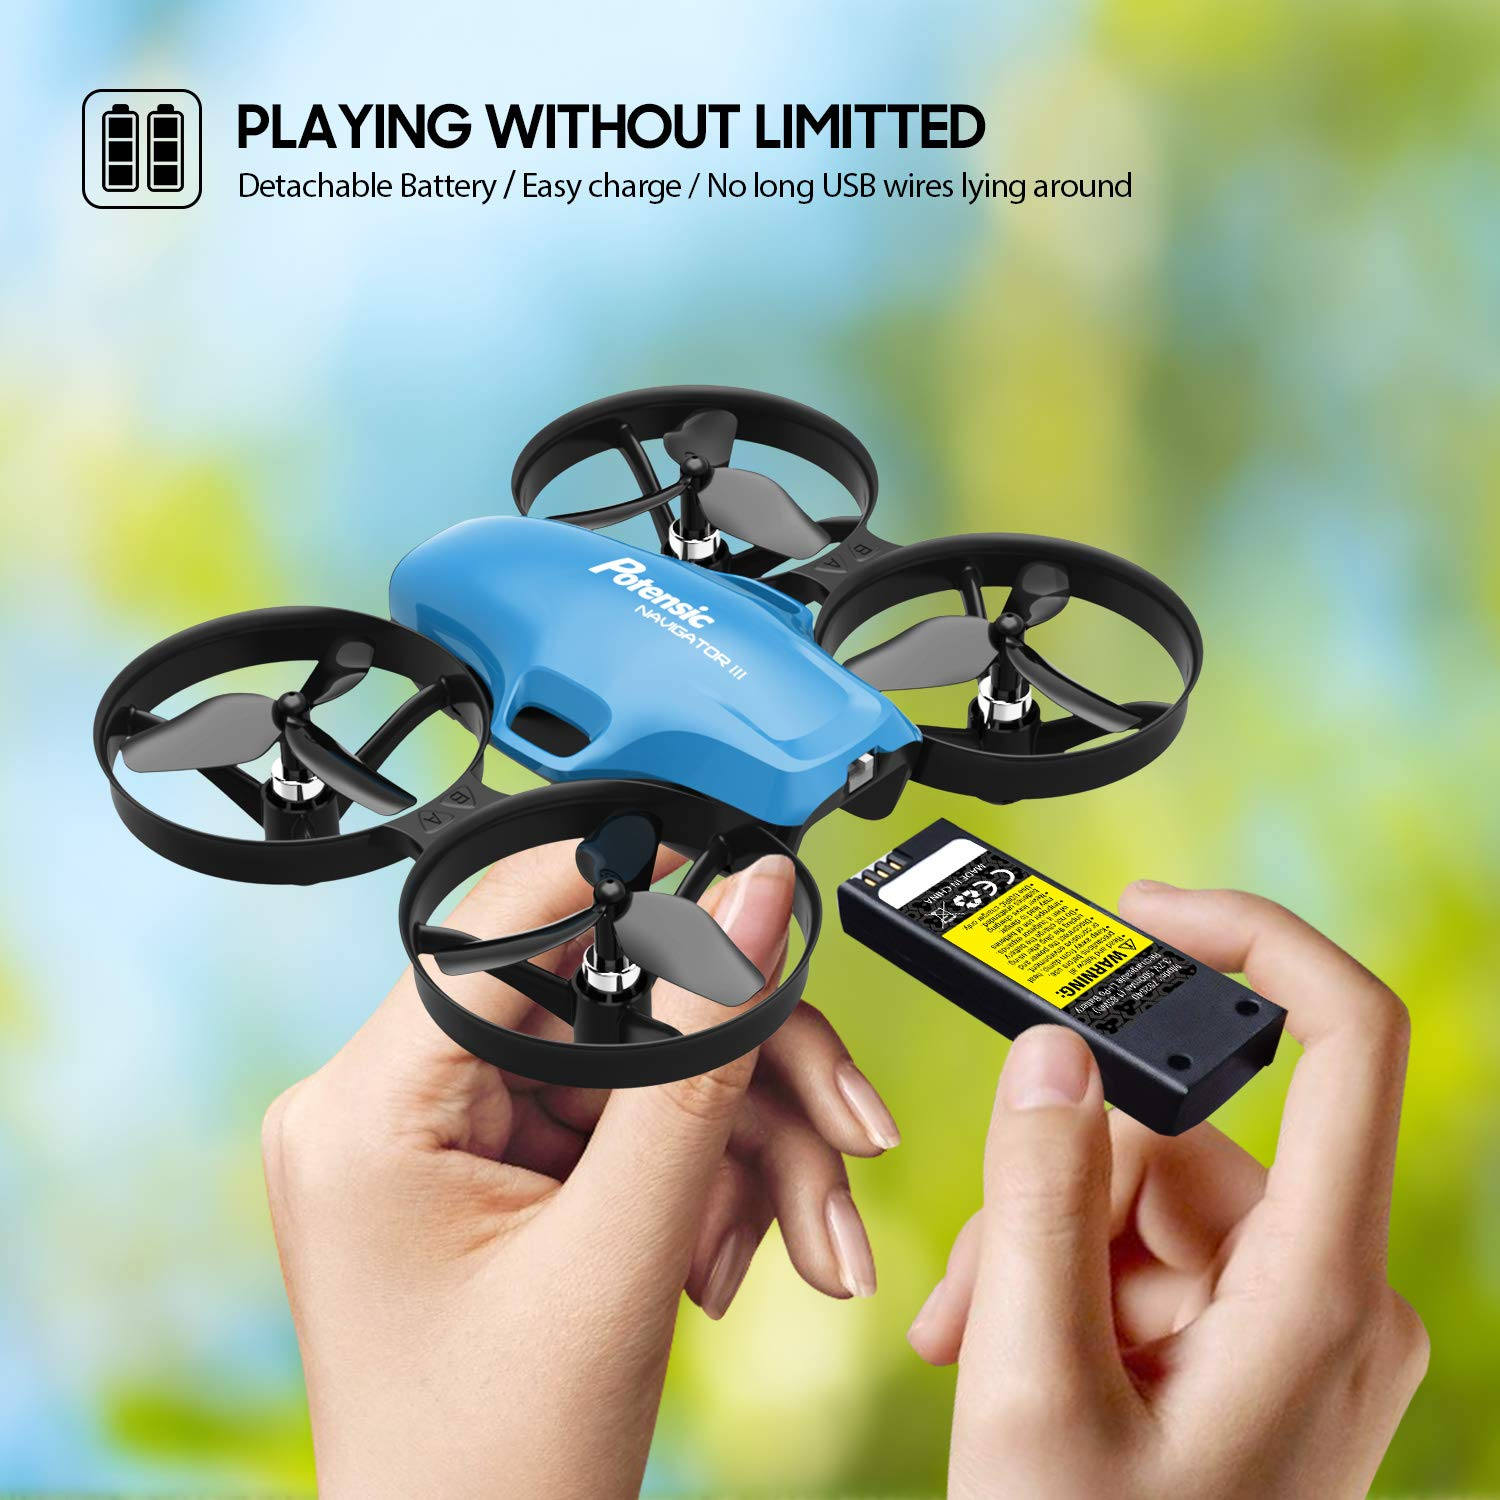 Mini Drone, RC Quadcopter, Potensic A30 One Key Take-Off/Land,Emergency Stopped, Altitude Hold,Auto Hovering,Drone for Kids (Blue) by Potensic (Image #8)